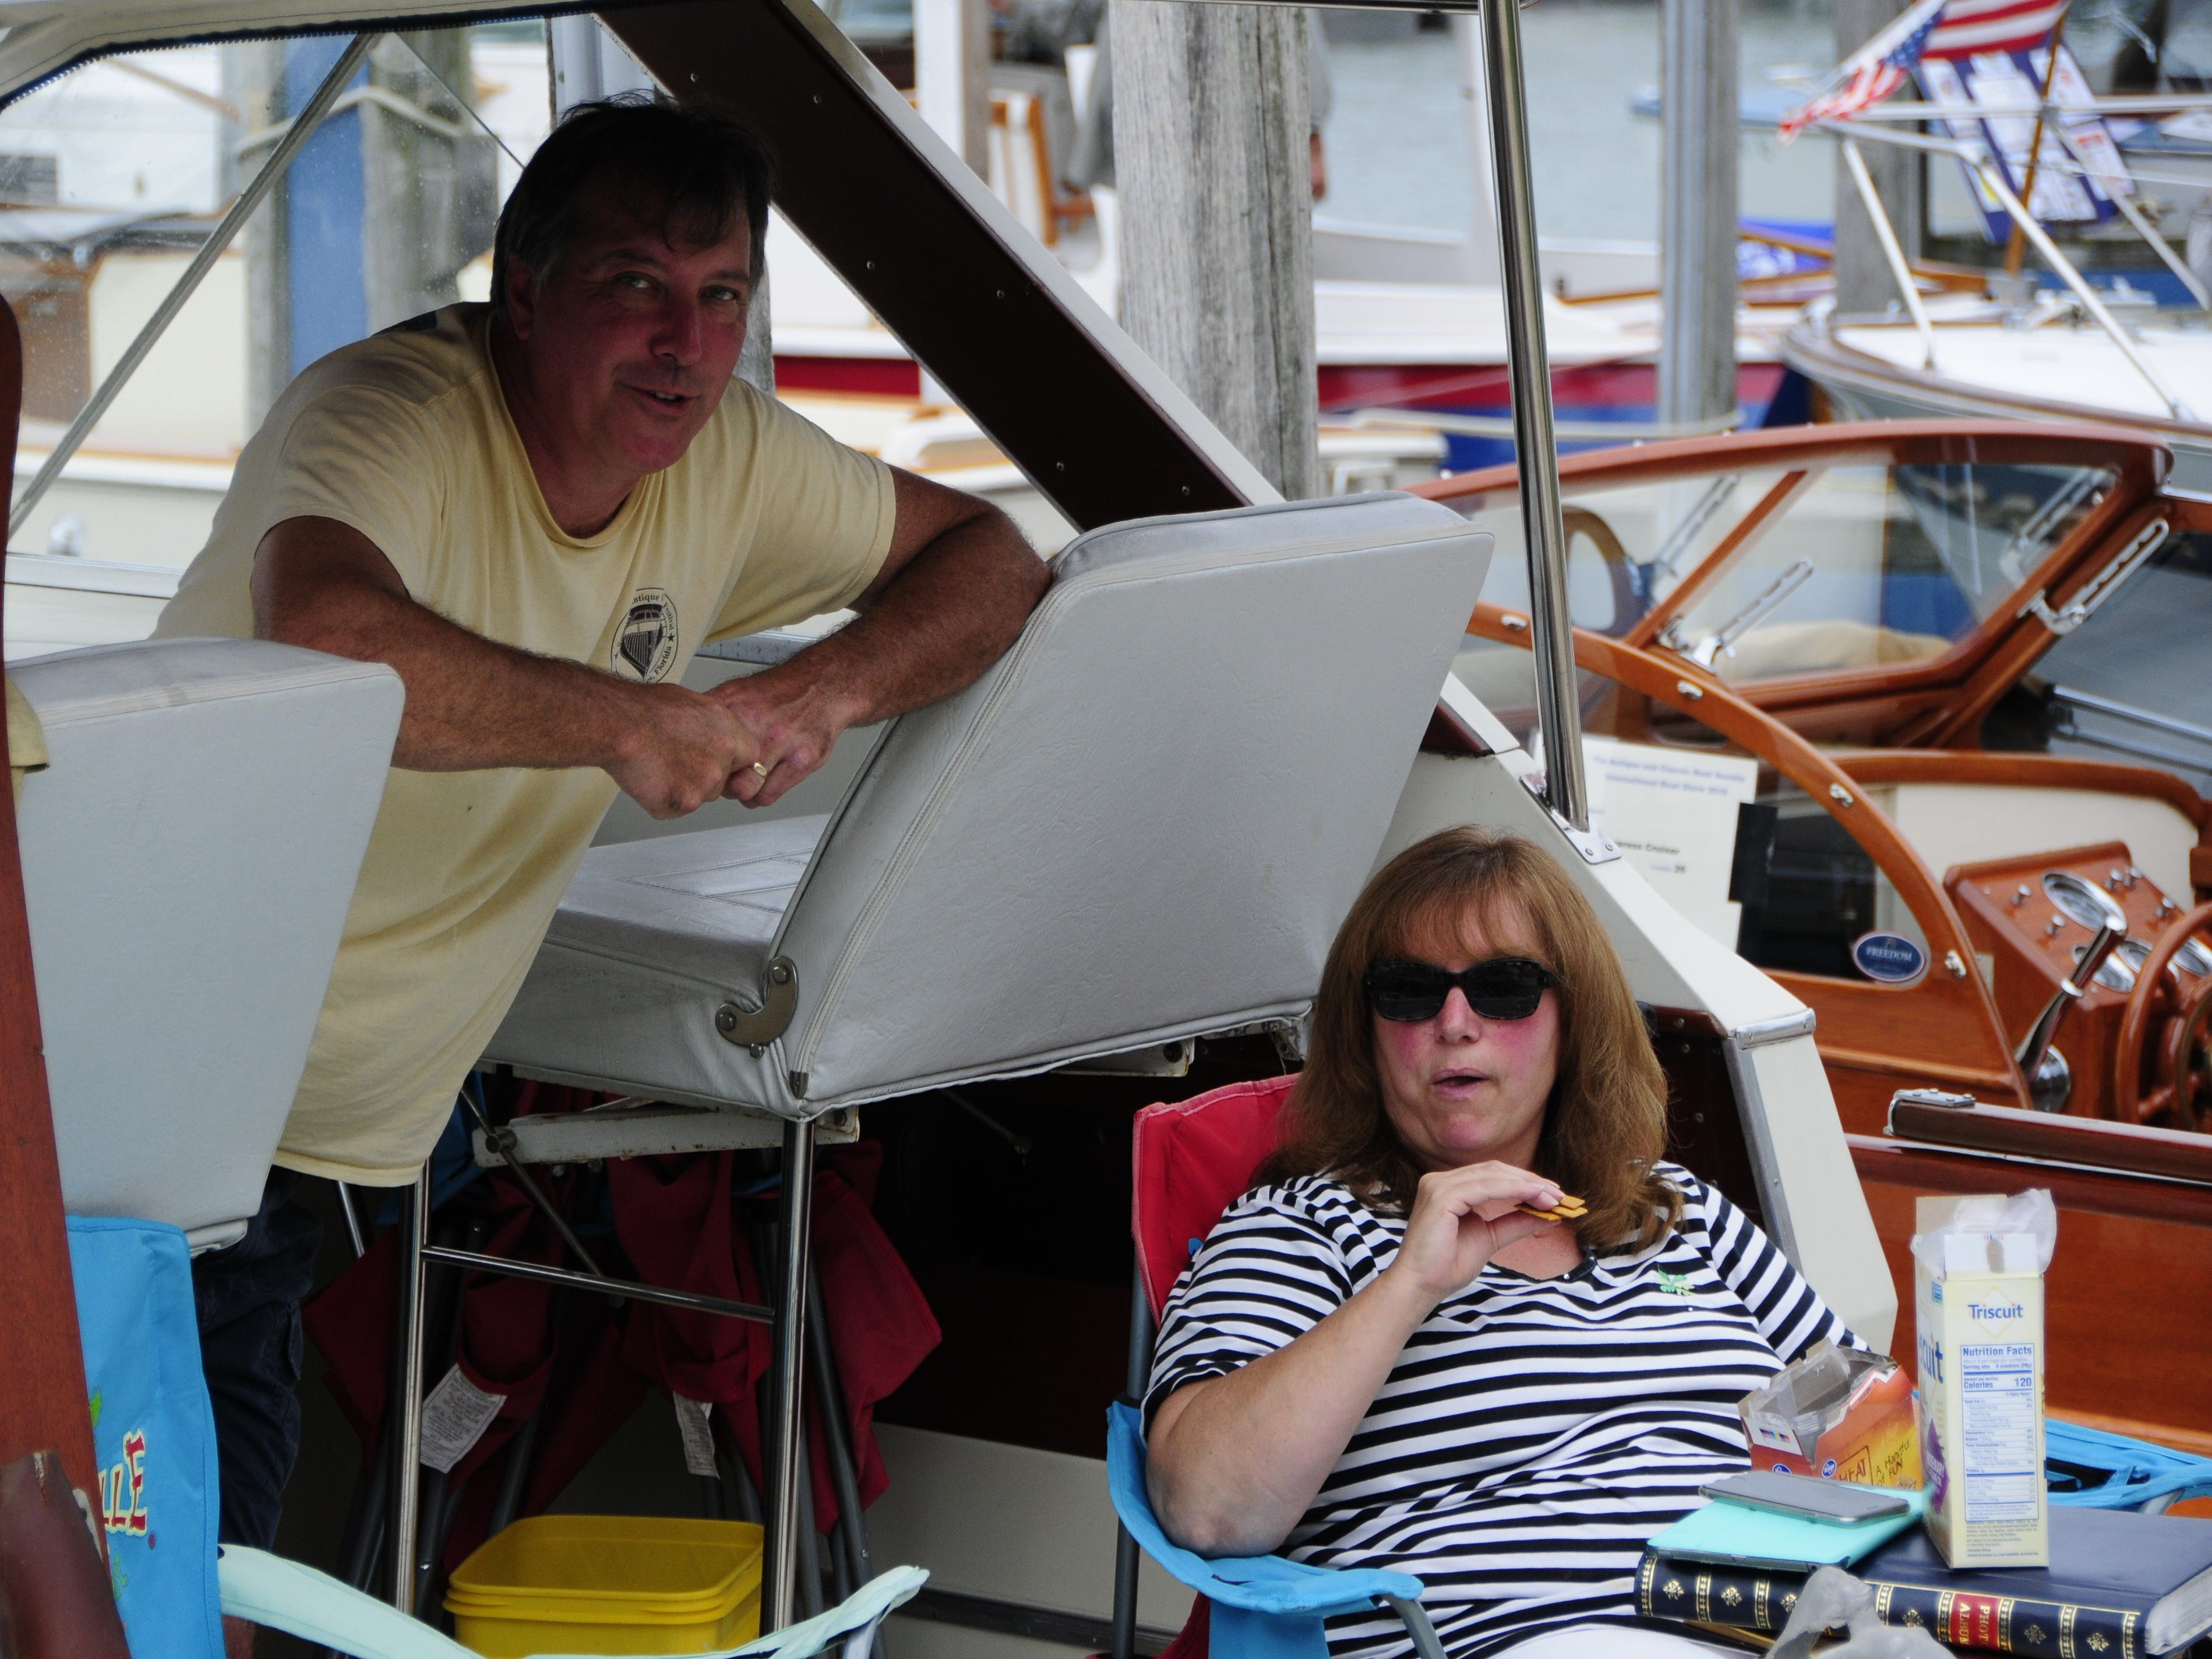 Michael and Chris Flood relax during the Antique and Classic Boat Society International Boat Show on Saturday, Sept. 15, 2018.